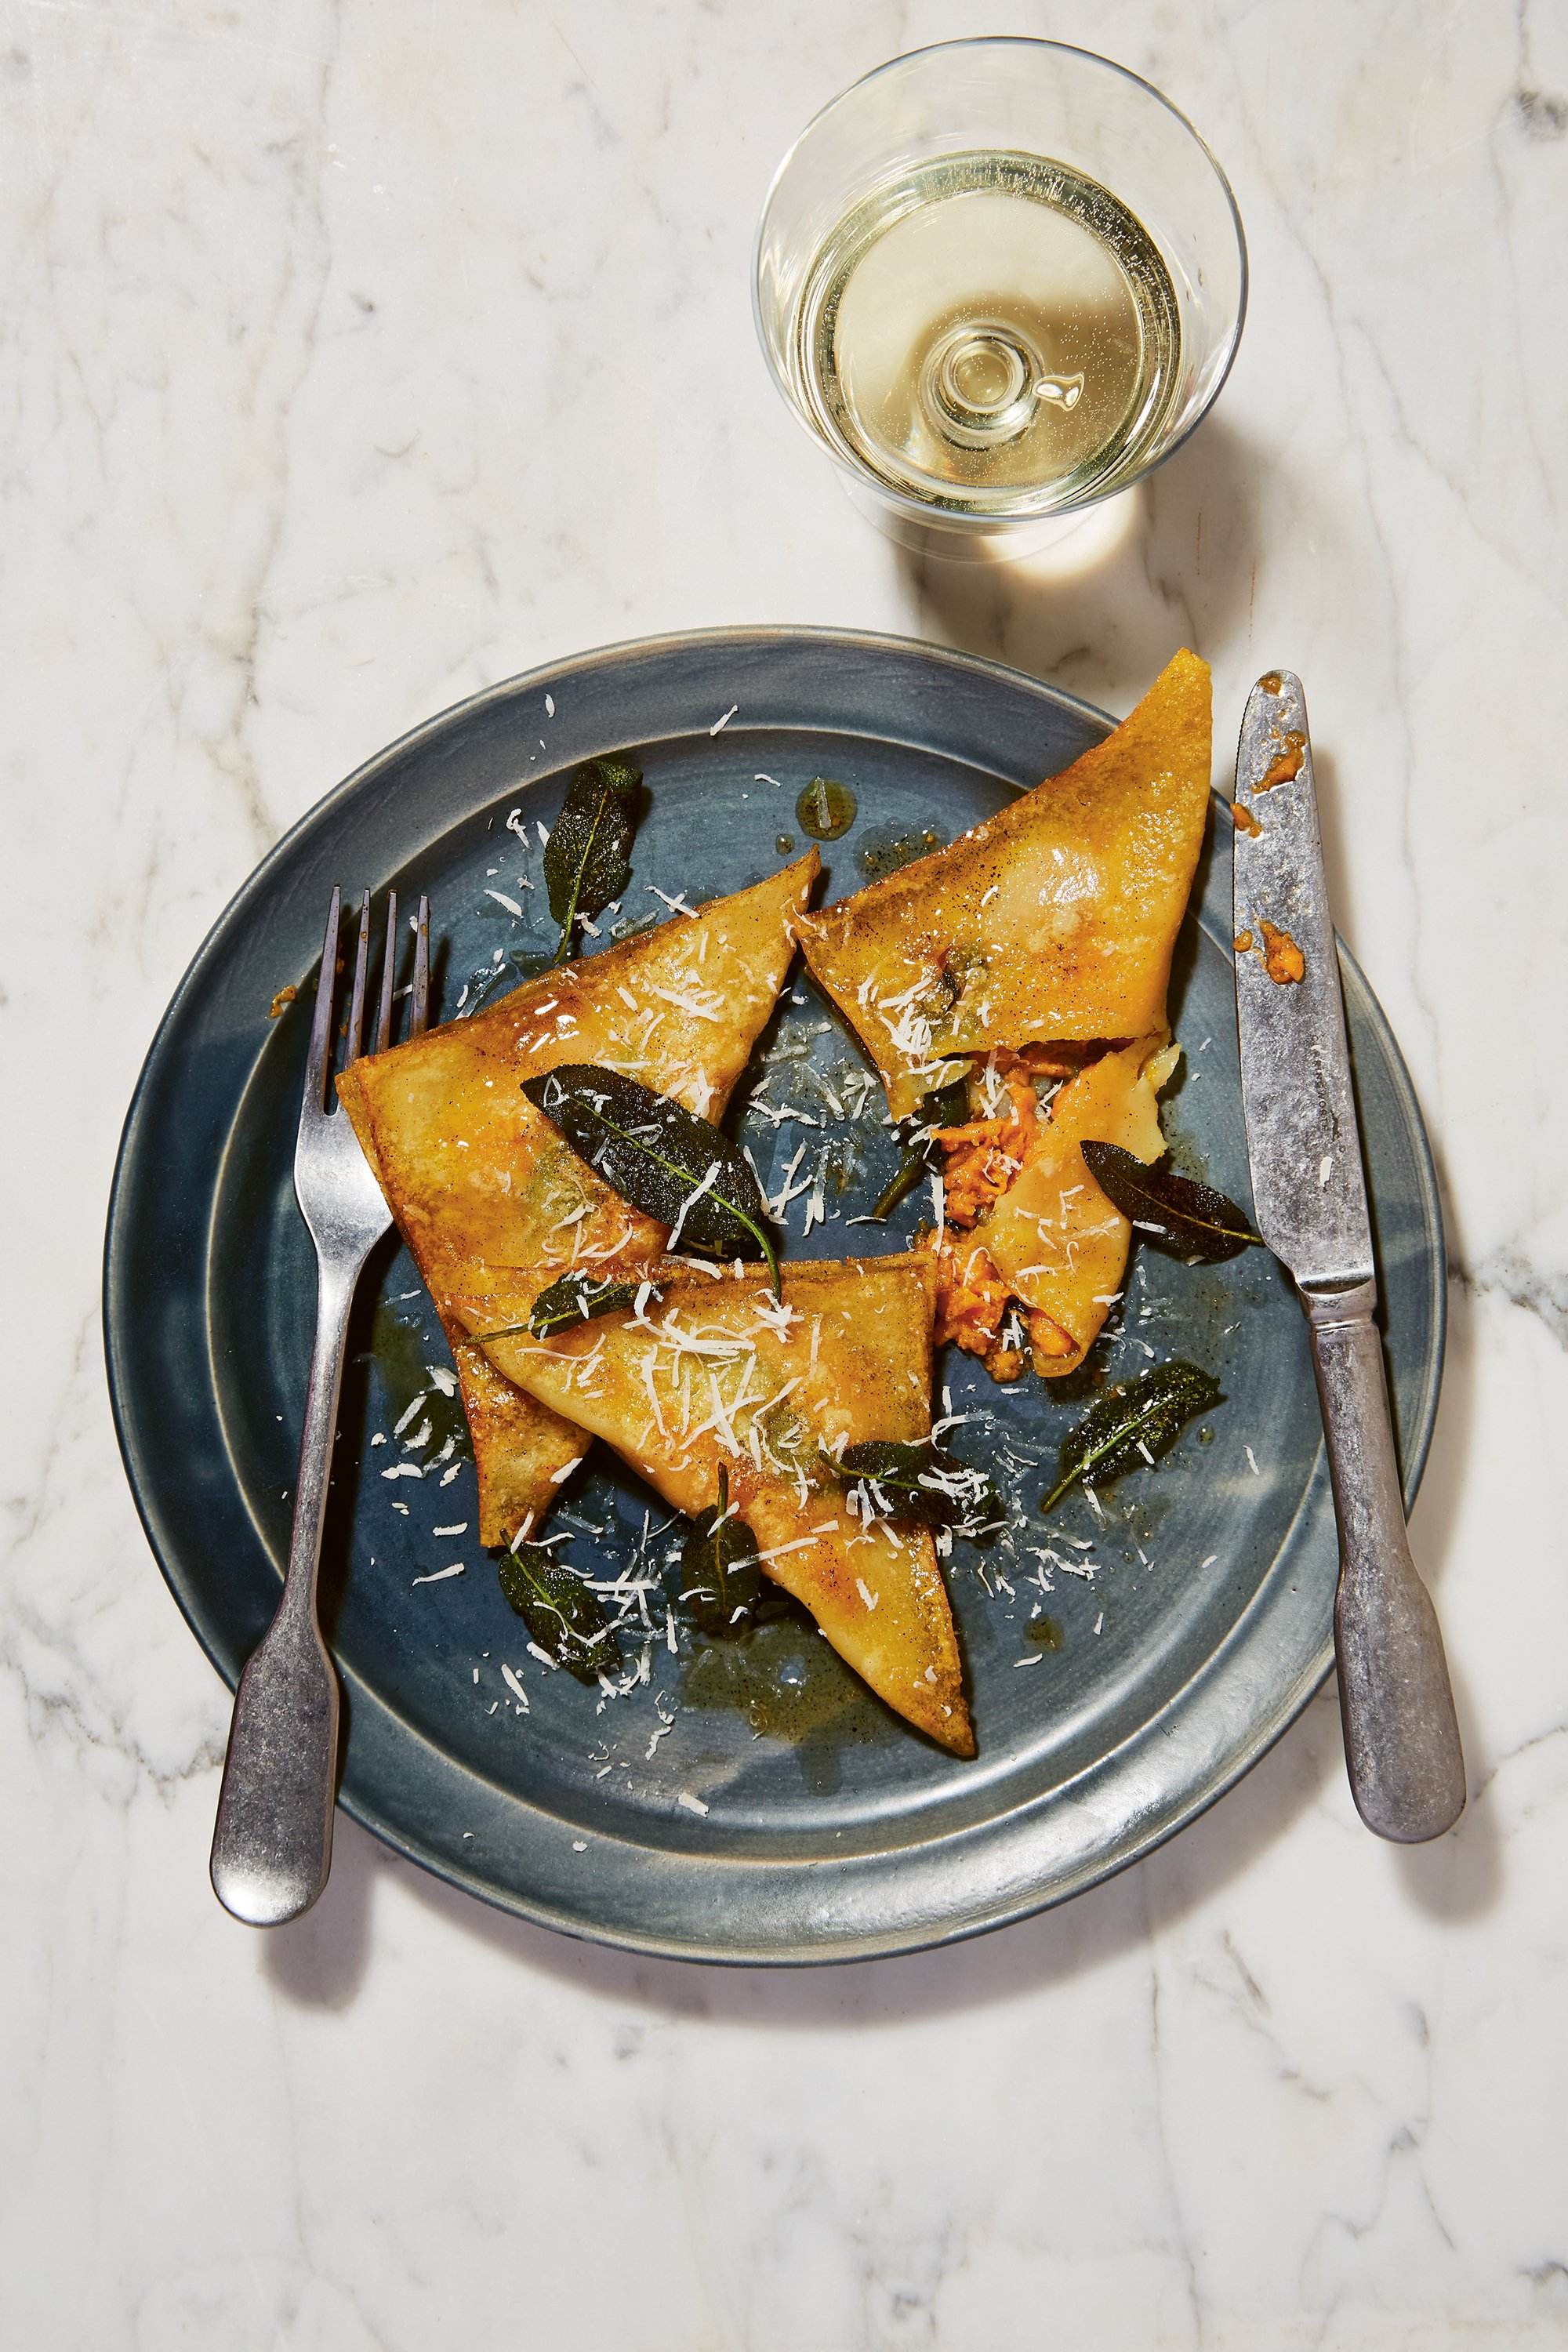 Sweet potato ravioli recipe with sage and brown butter